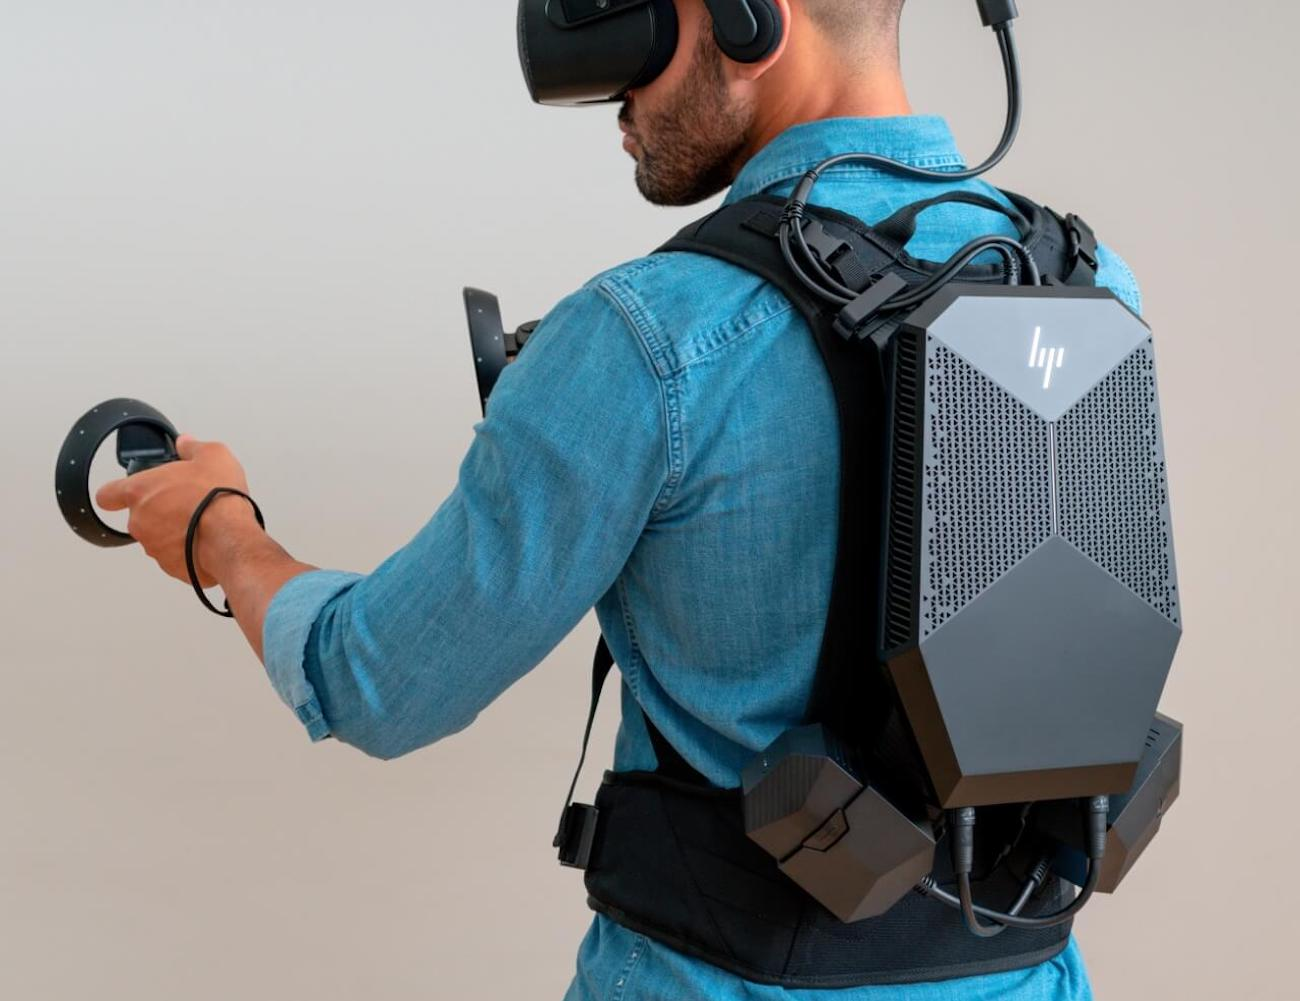 HP VR Backpack G2 Free-Roam Wearable PC provides faster graphics for your virtual world